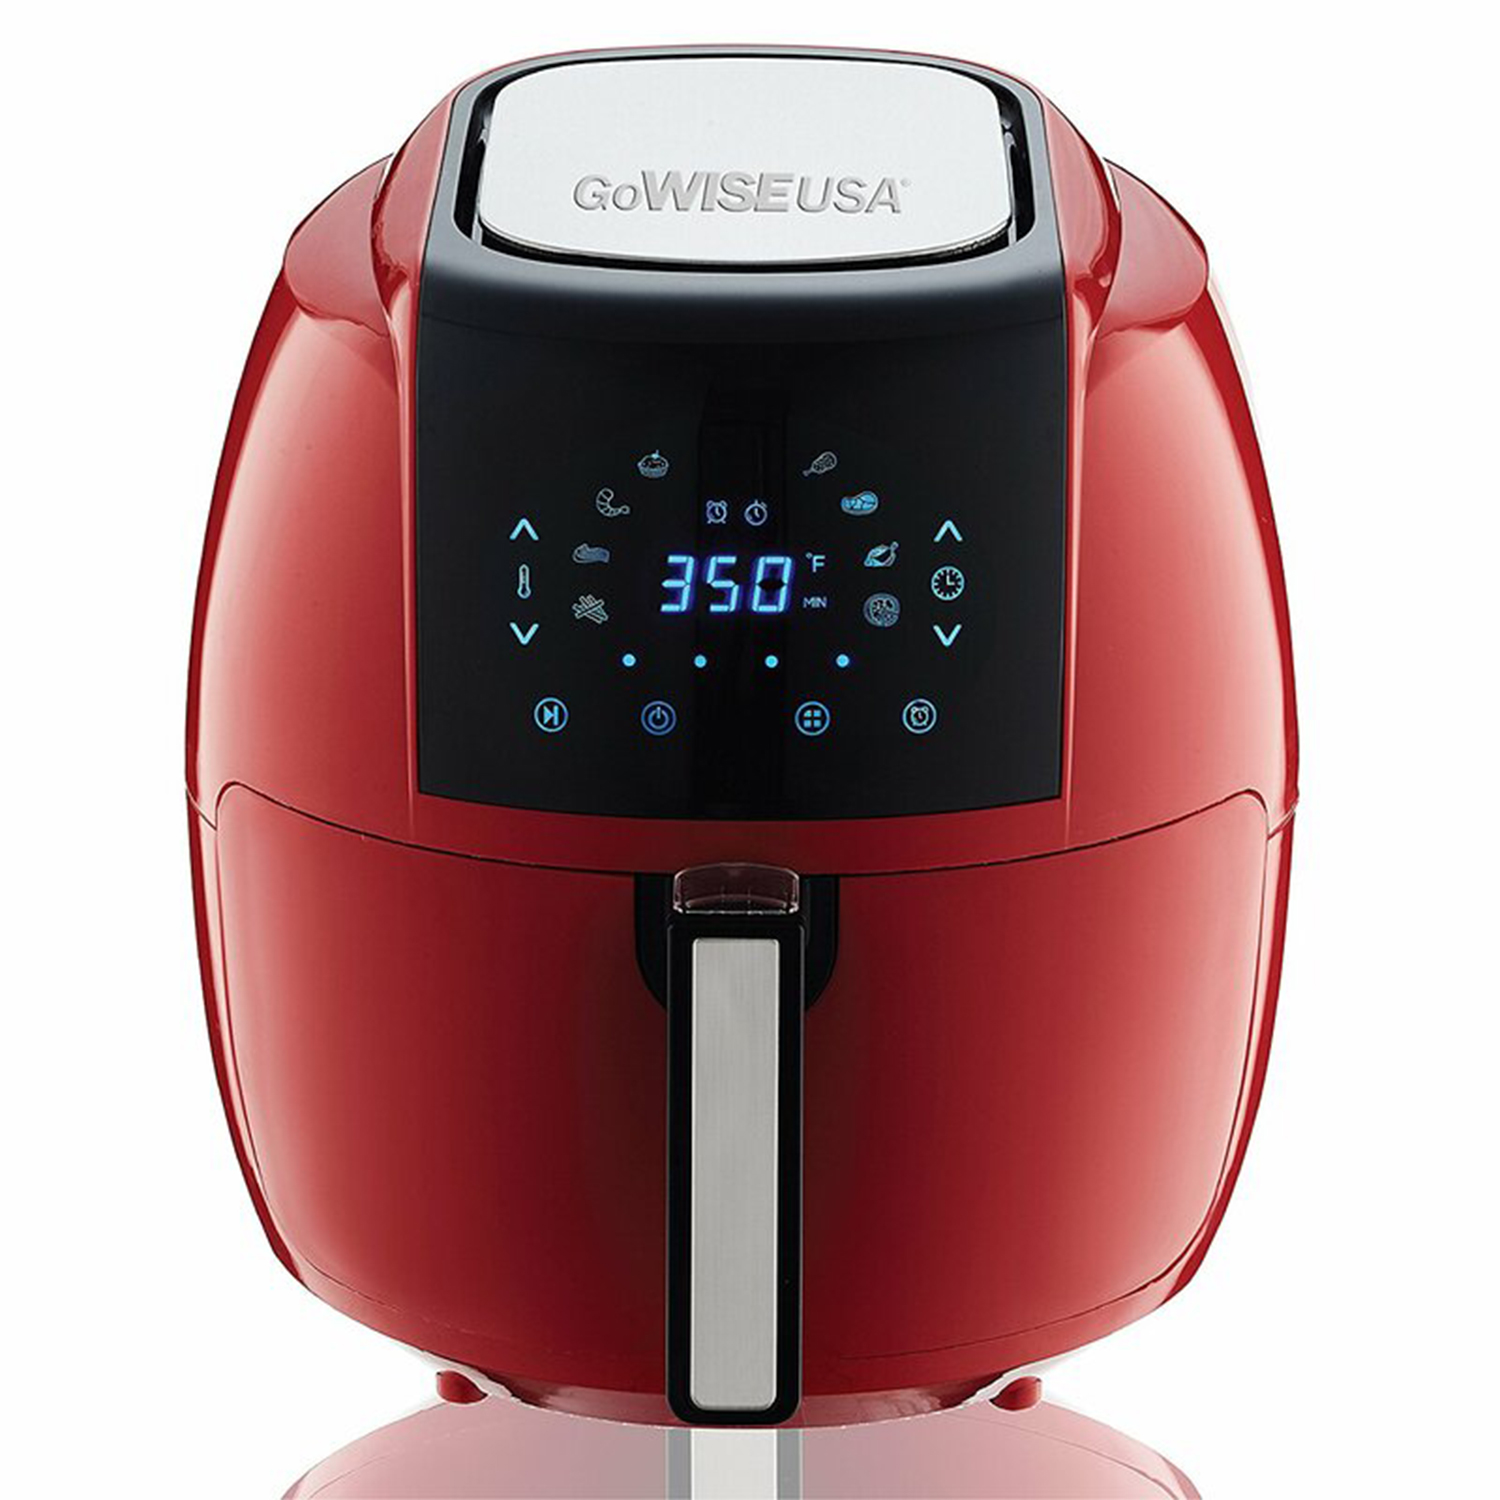 GoWise USA 5.5-Liter 8-in-1 Electric Air Fryer